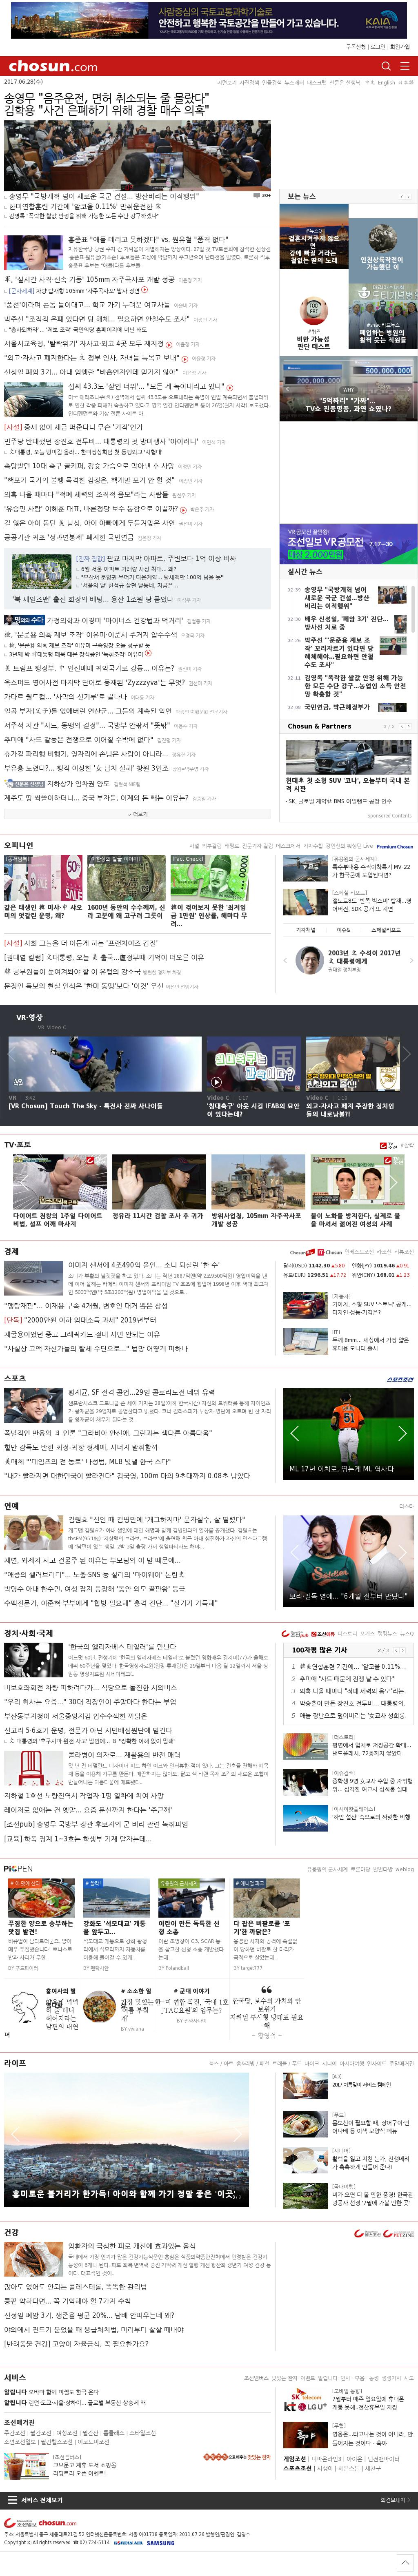 chosun.com at Wednesday June 28, 2017, 4:02 a.m. UTC